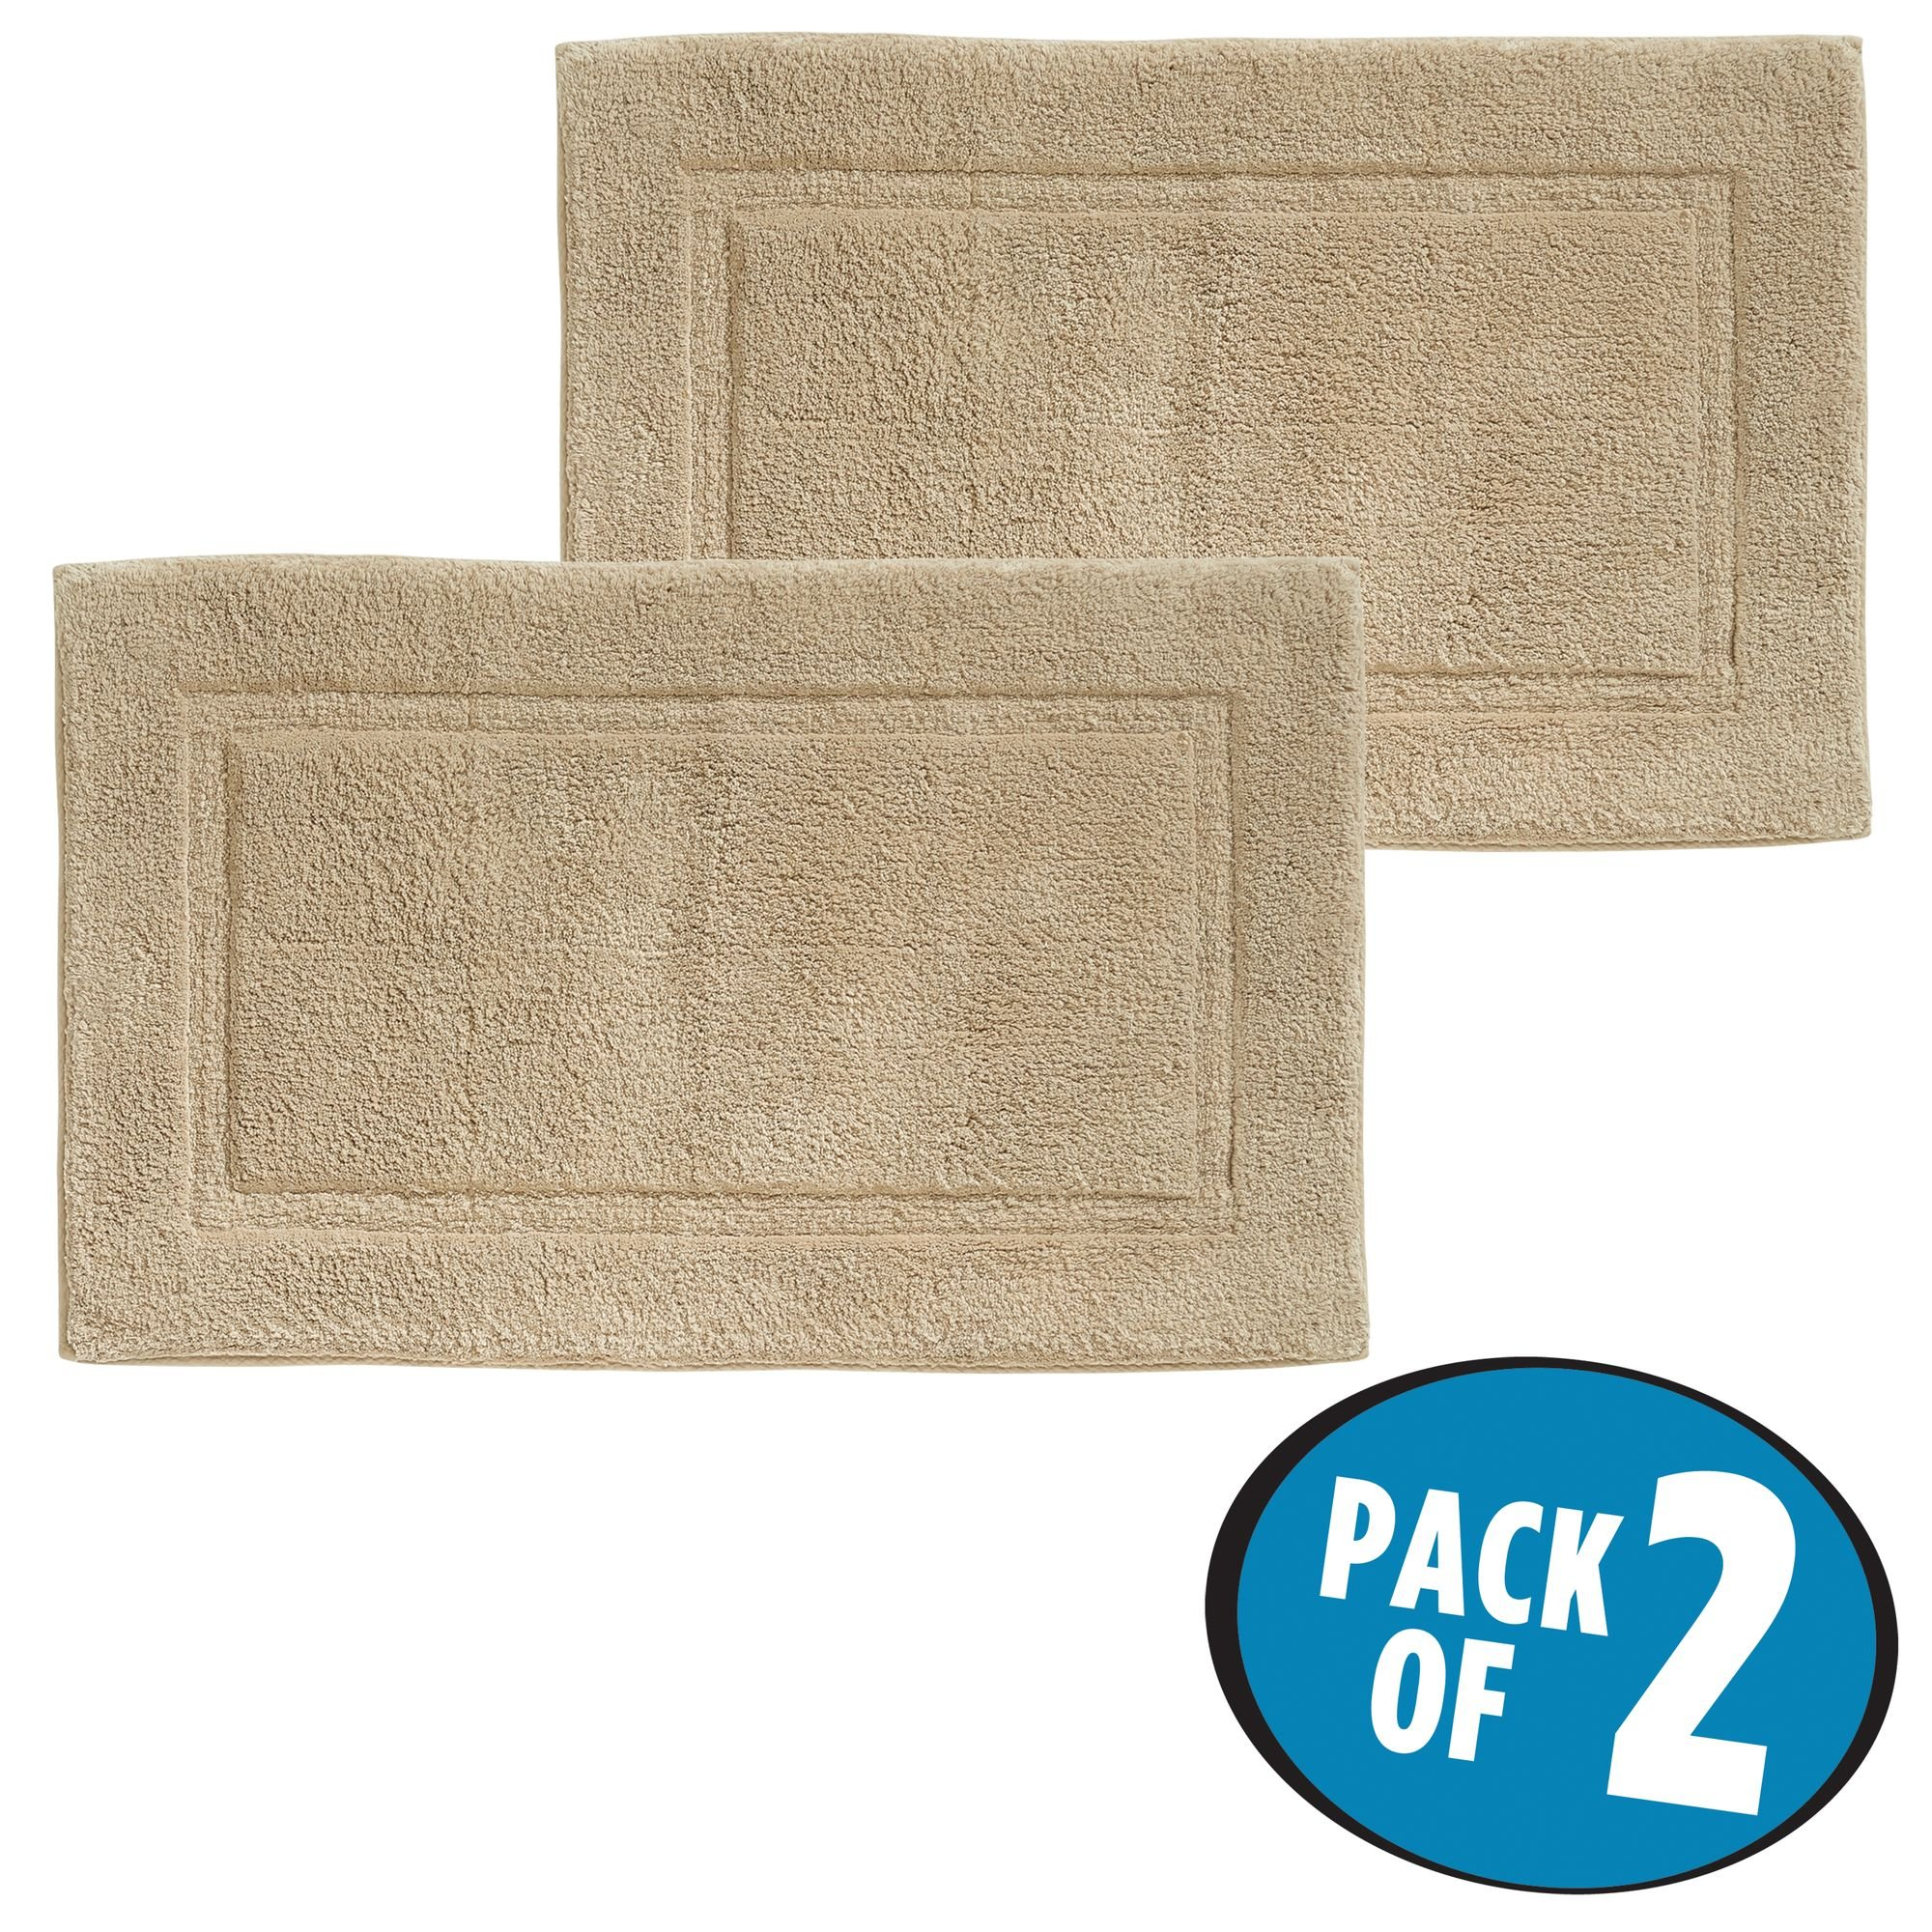 mDesign Soft 100% Cotton Luxury Hotel-Style Rectangular Spa Mat Rug, Plush Water Absorbent, Decorative Border - for Bathroom Vanity, Bathtub/Shower, Machine Washable - Pack of 2, Linen